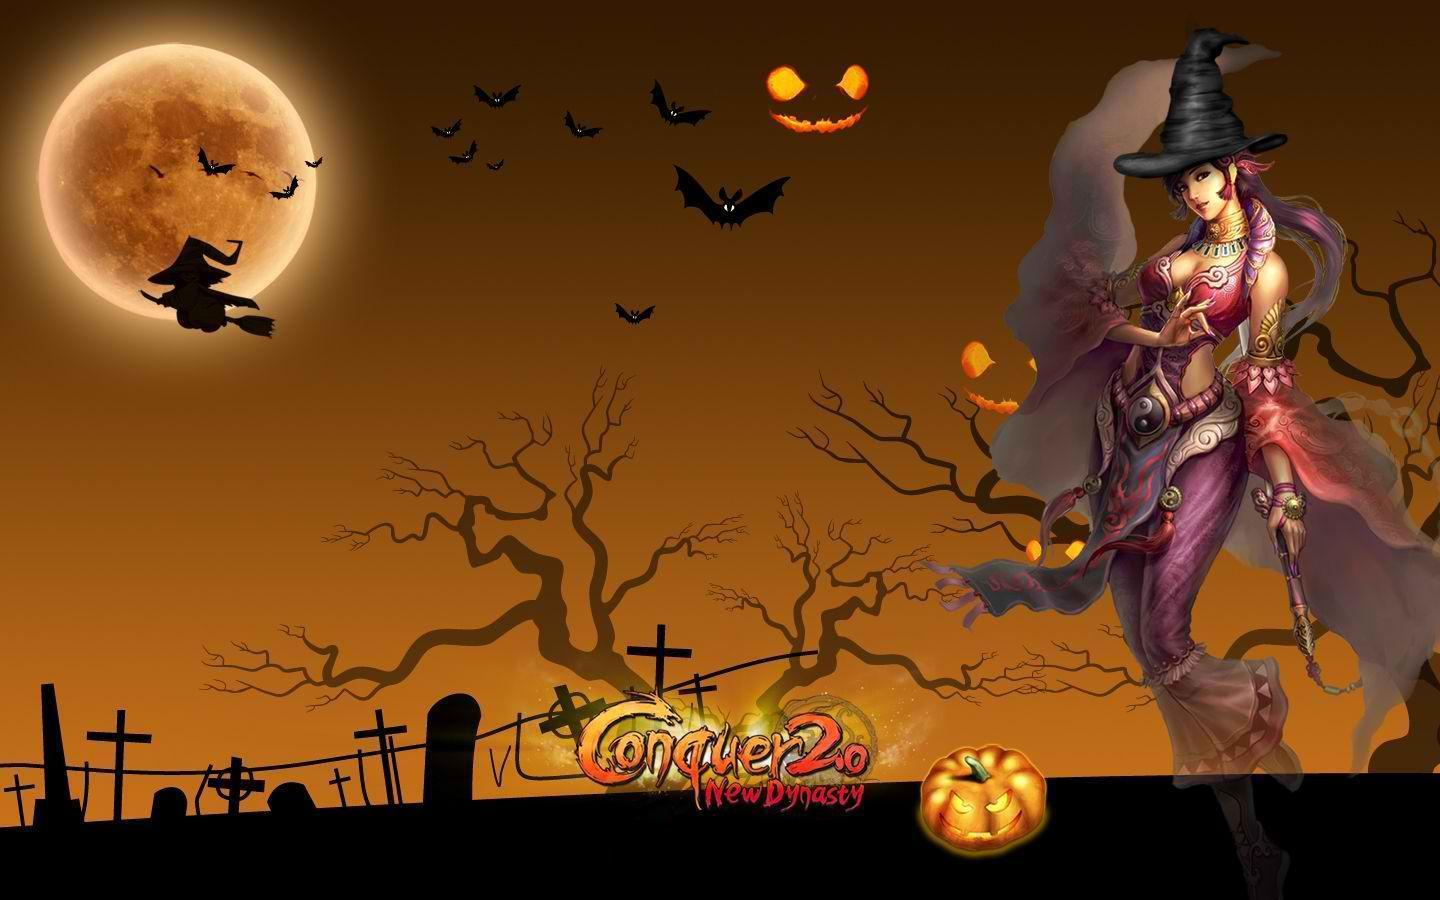 animated halloween wallpaper witches - photo #17